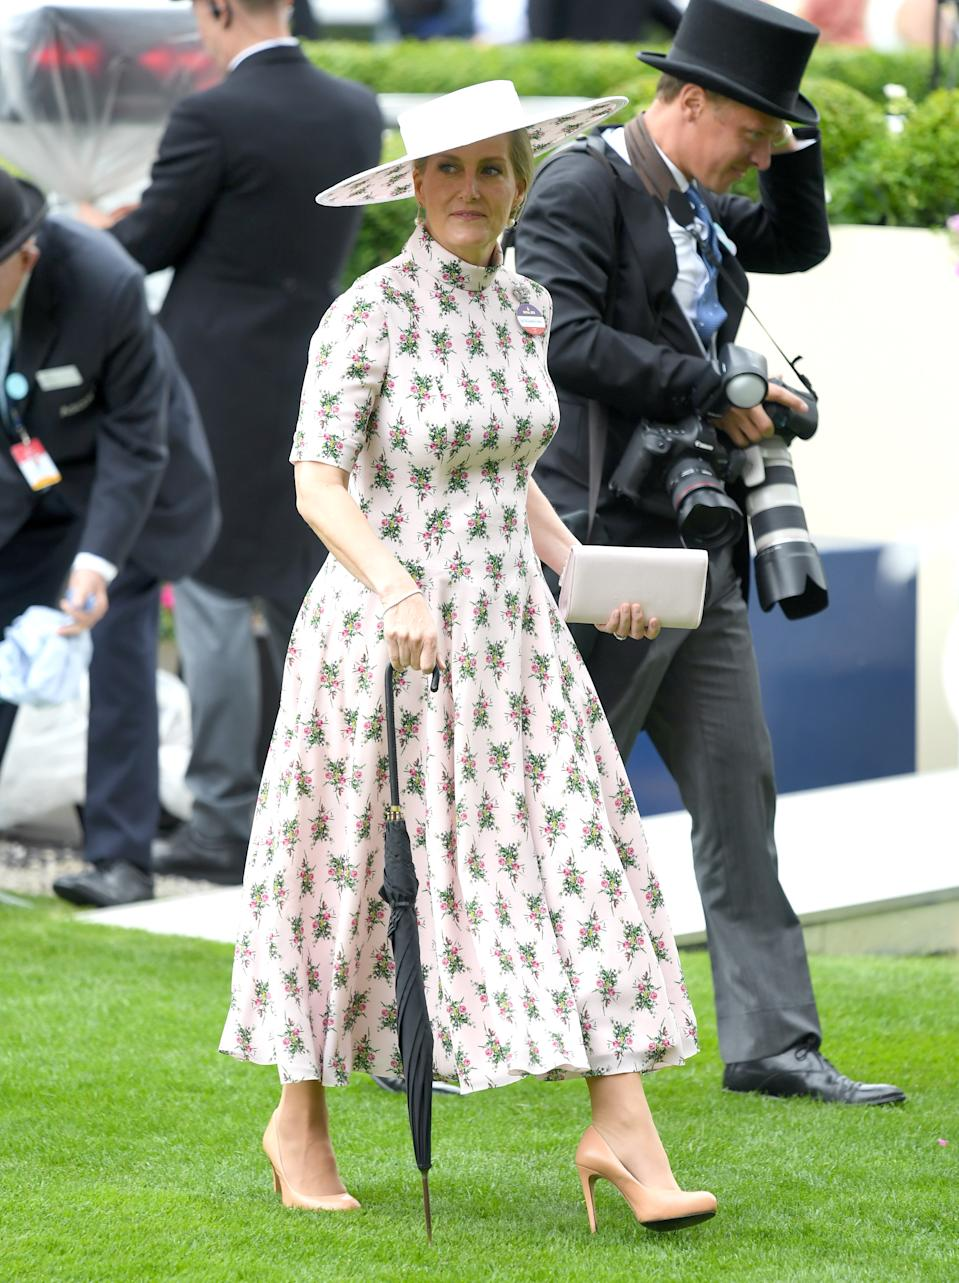 """Sophie, Countess of Wessex wore a custom printed midi dress by <a href=""""https://fave.co/2WRpr8g"""" rel=""""nofollow noopener"""" target=""""_blank"""" data-ylk=""""slk:Emilia Wickstead"""" class=""""link rapid-noclick-resp"""">Emilia Wickstead</a>, based on their Resort 2019 collection.<em> [Photo: Getty]</em>"""